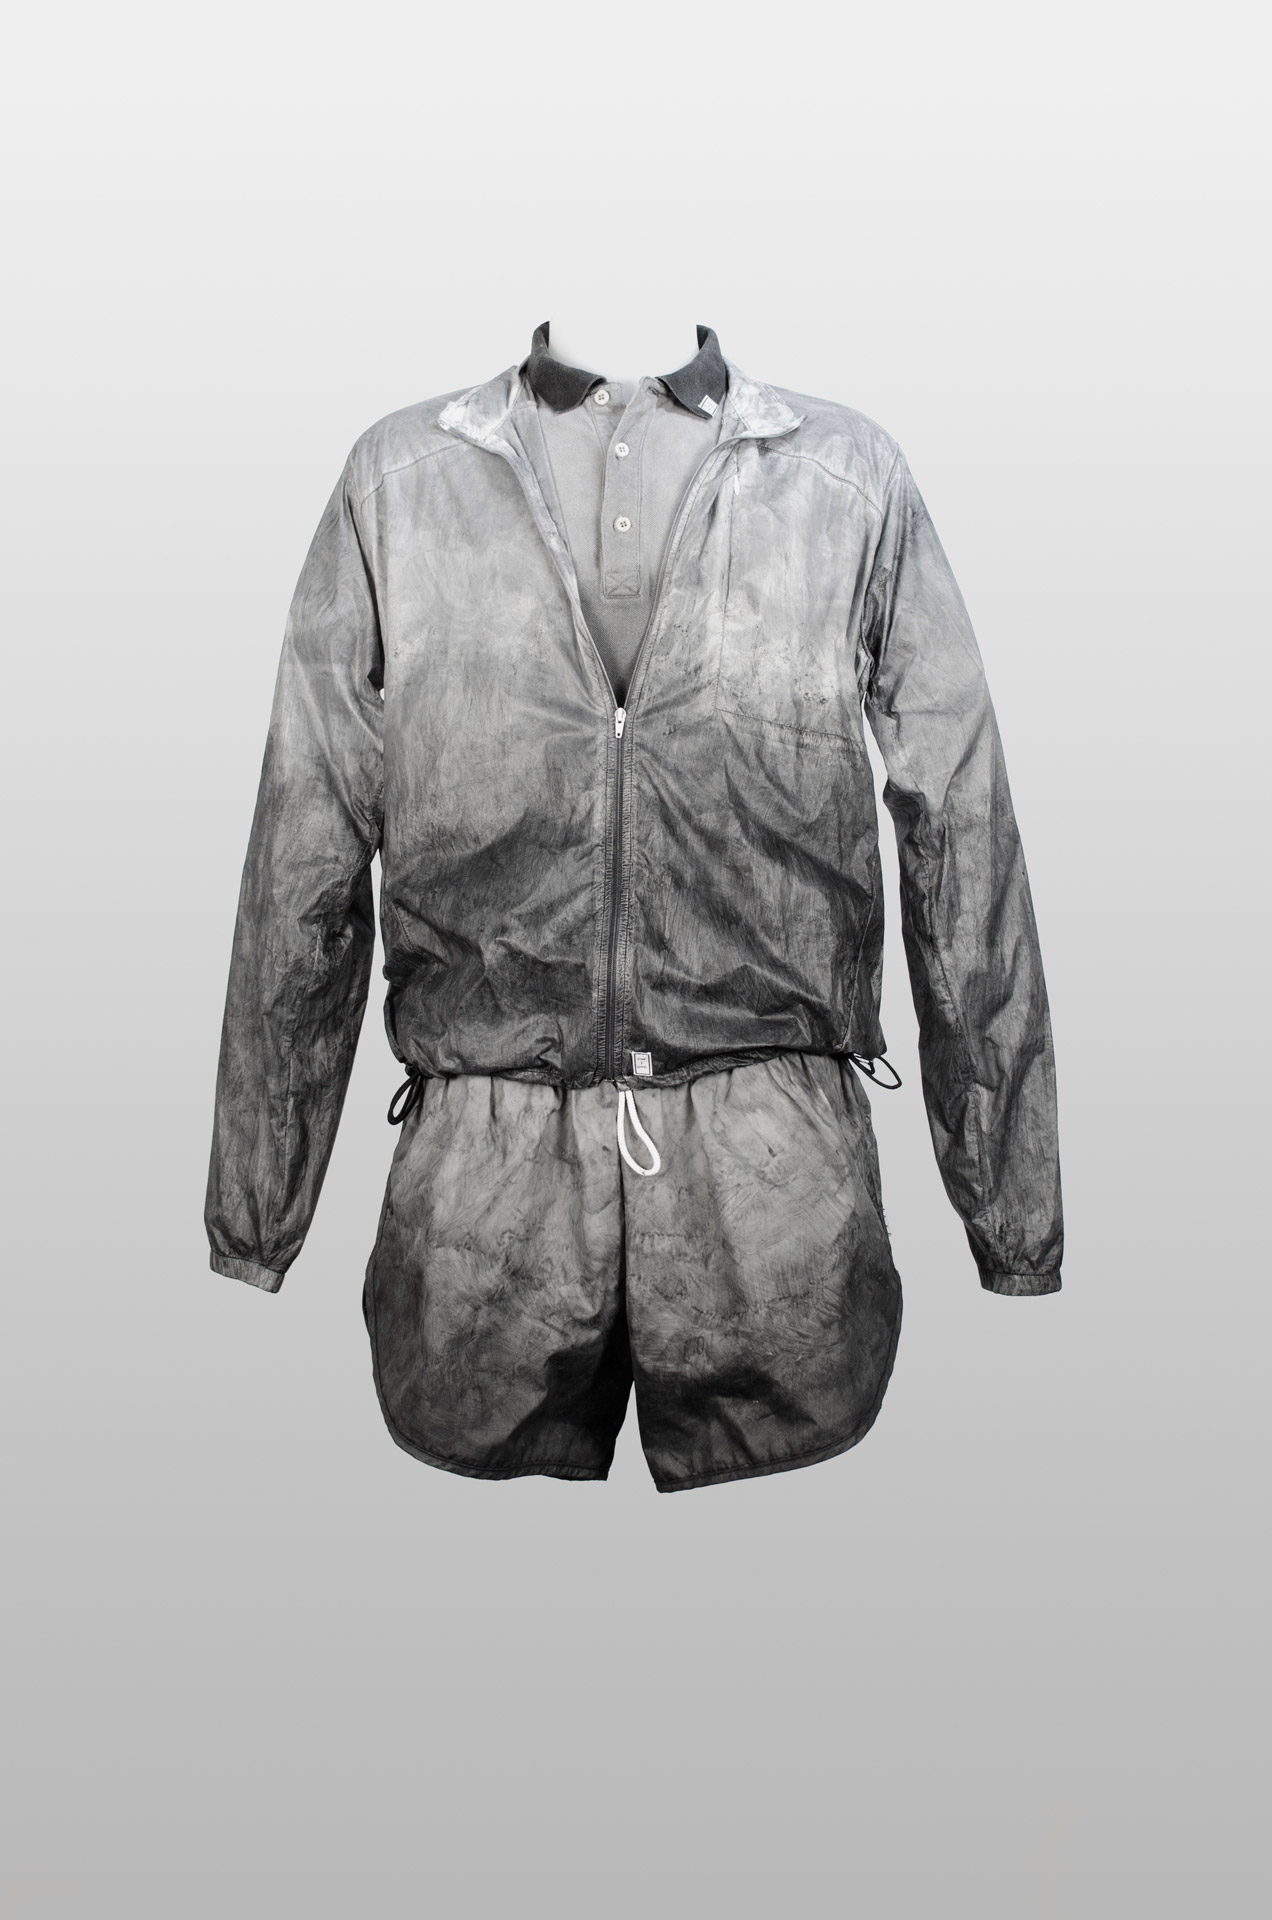 Tino Seubert - The Colour of Air - PM-DYE Running Outfit